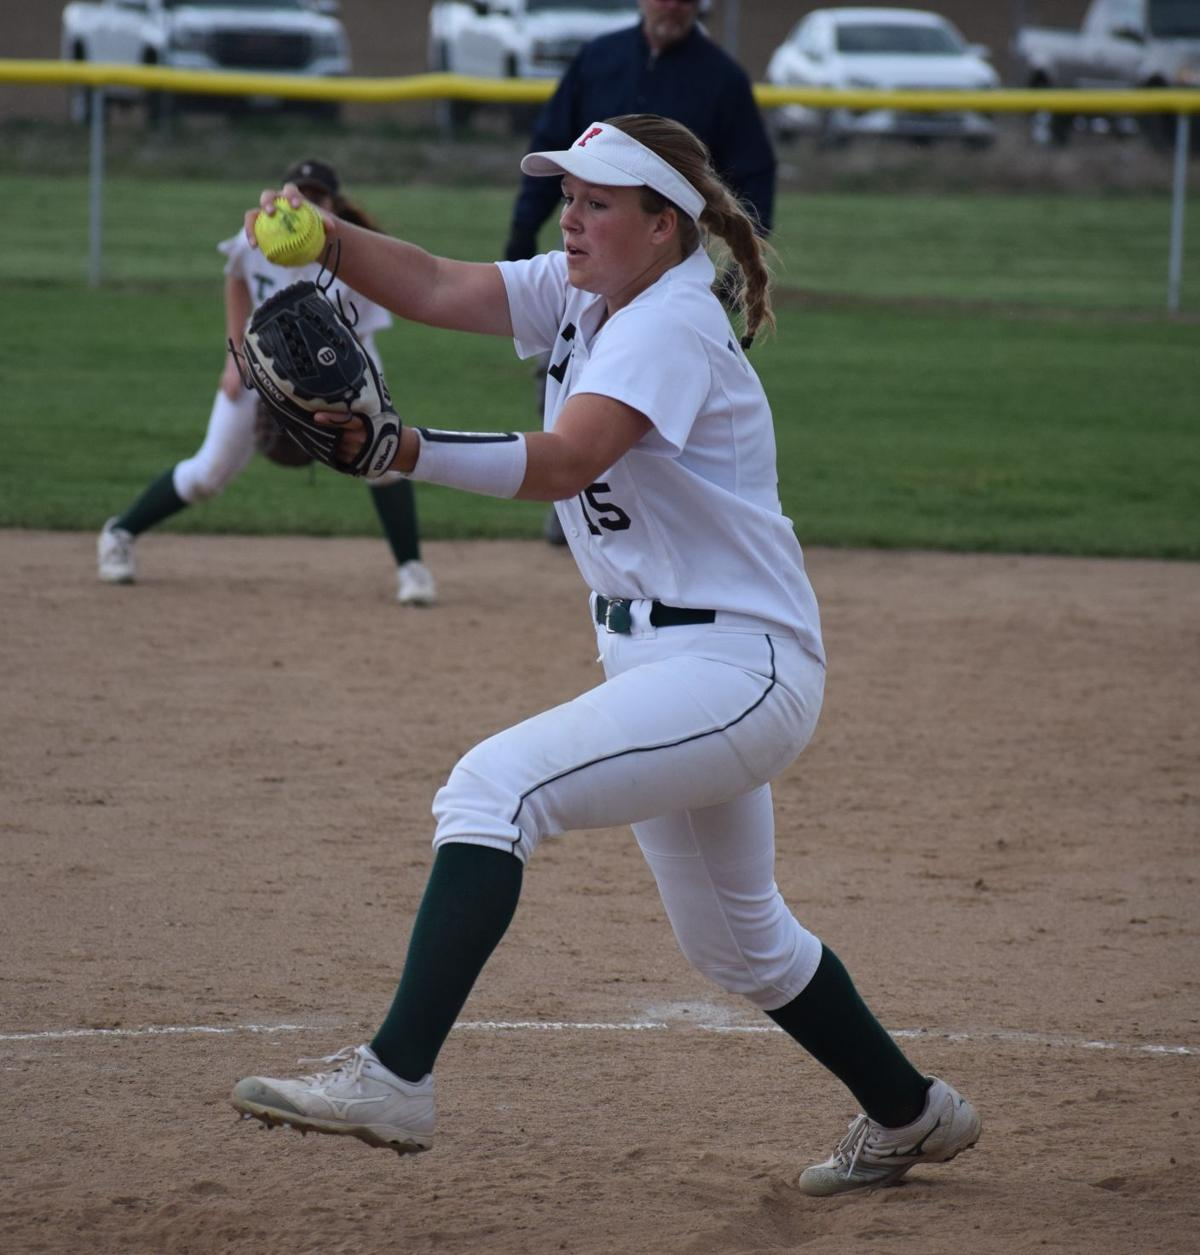 Meghan Daffern pitching. photo by Rick Torres.JPG